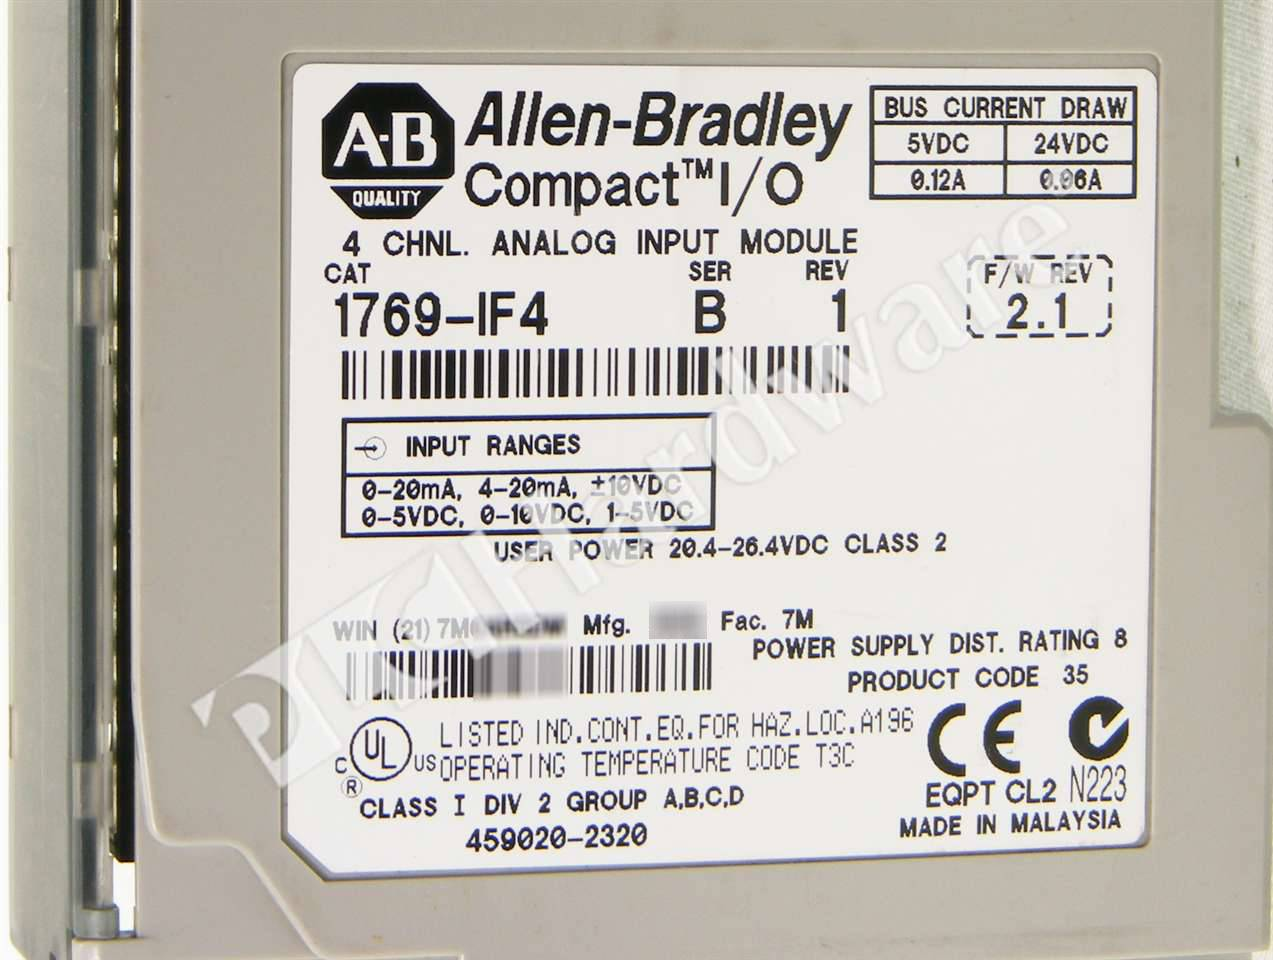 Ab Plc Wiring Diagram 1769 If4 23 Images Diagrams Ra B Upp 3 Hardware Allen Bradley 4 Ch Analog Current